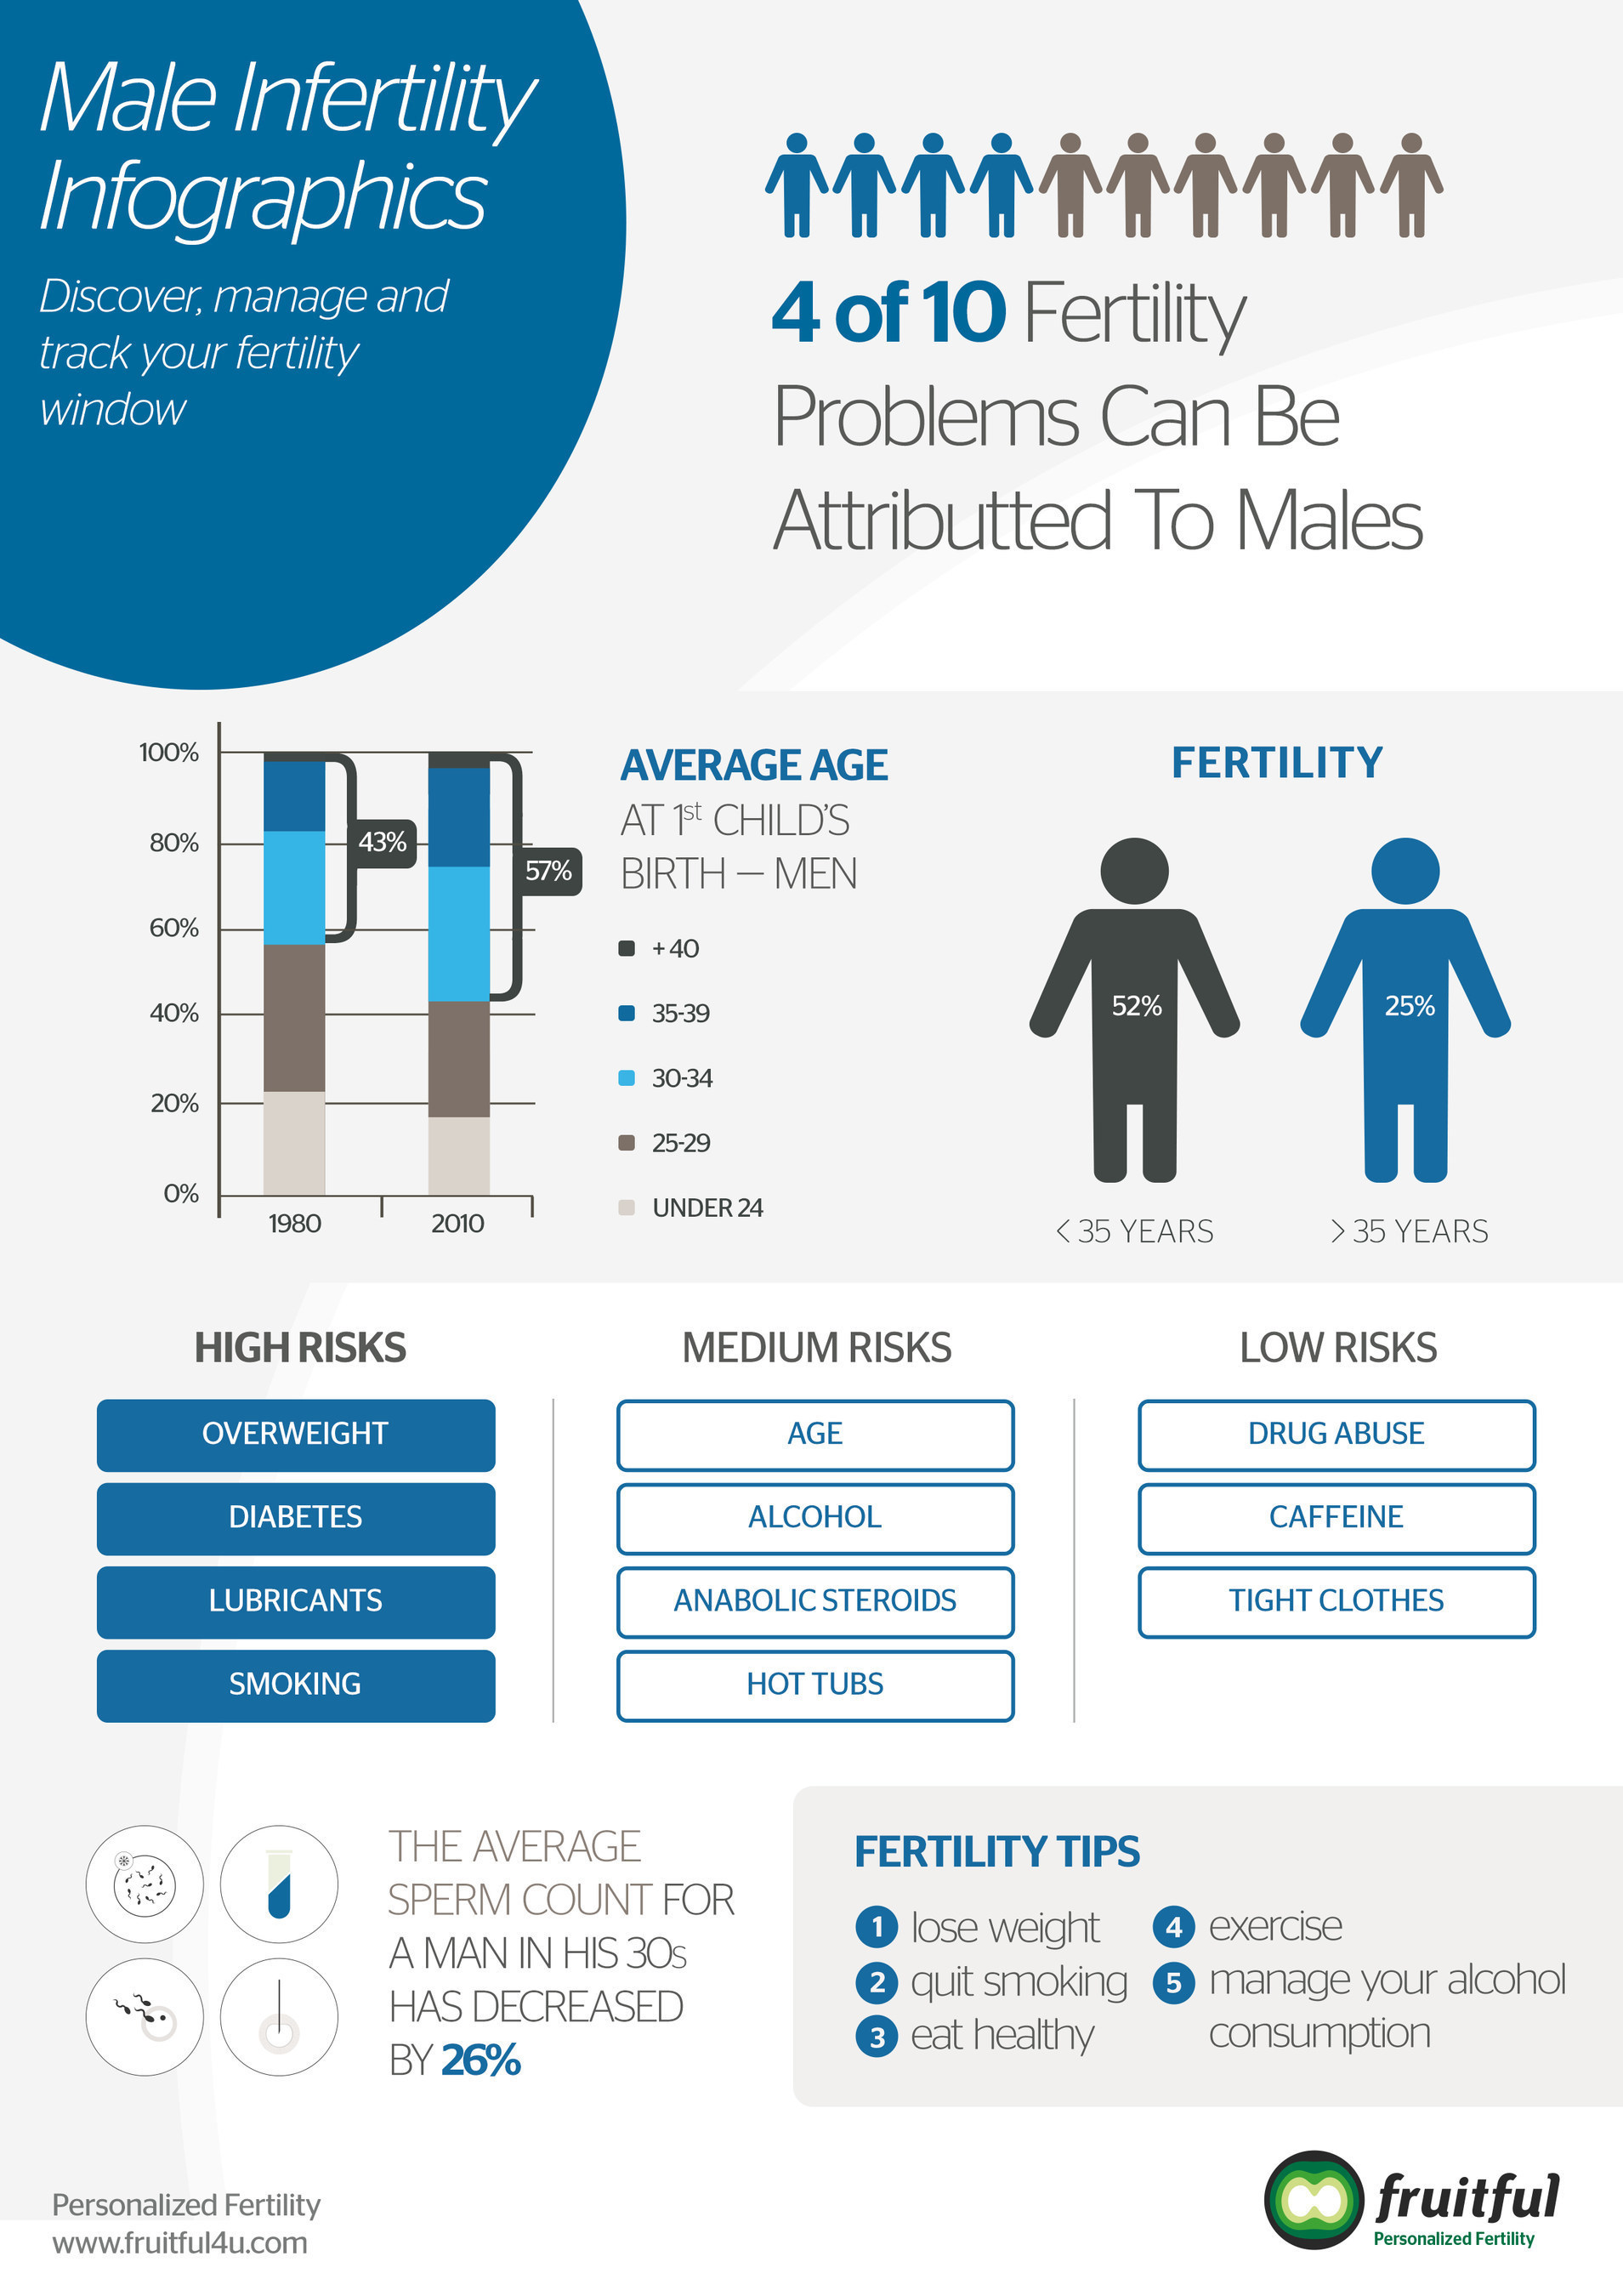 Male infertility infographic